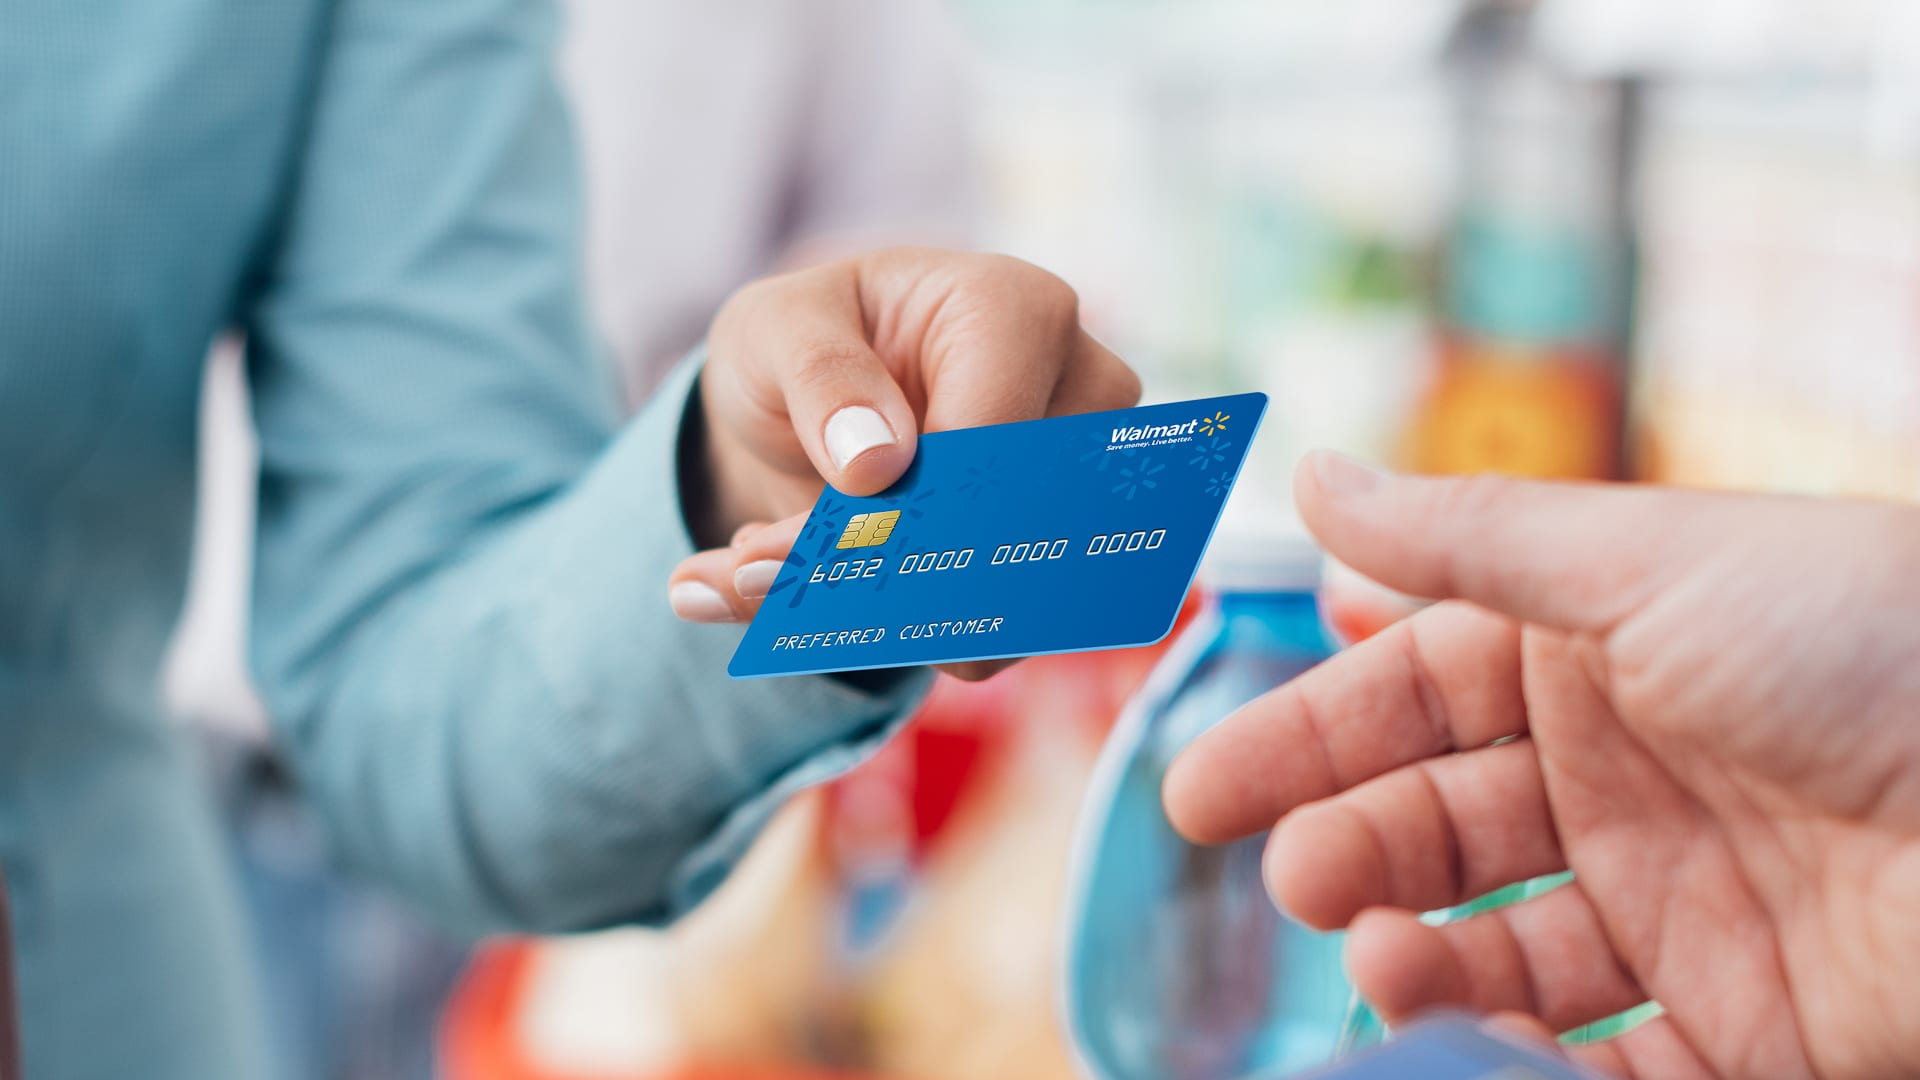 How To Use Your New Credit Card Responsibly